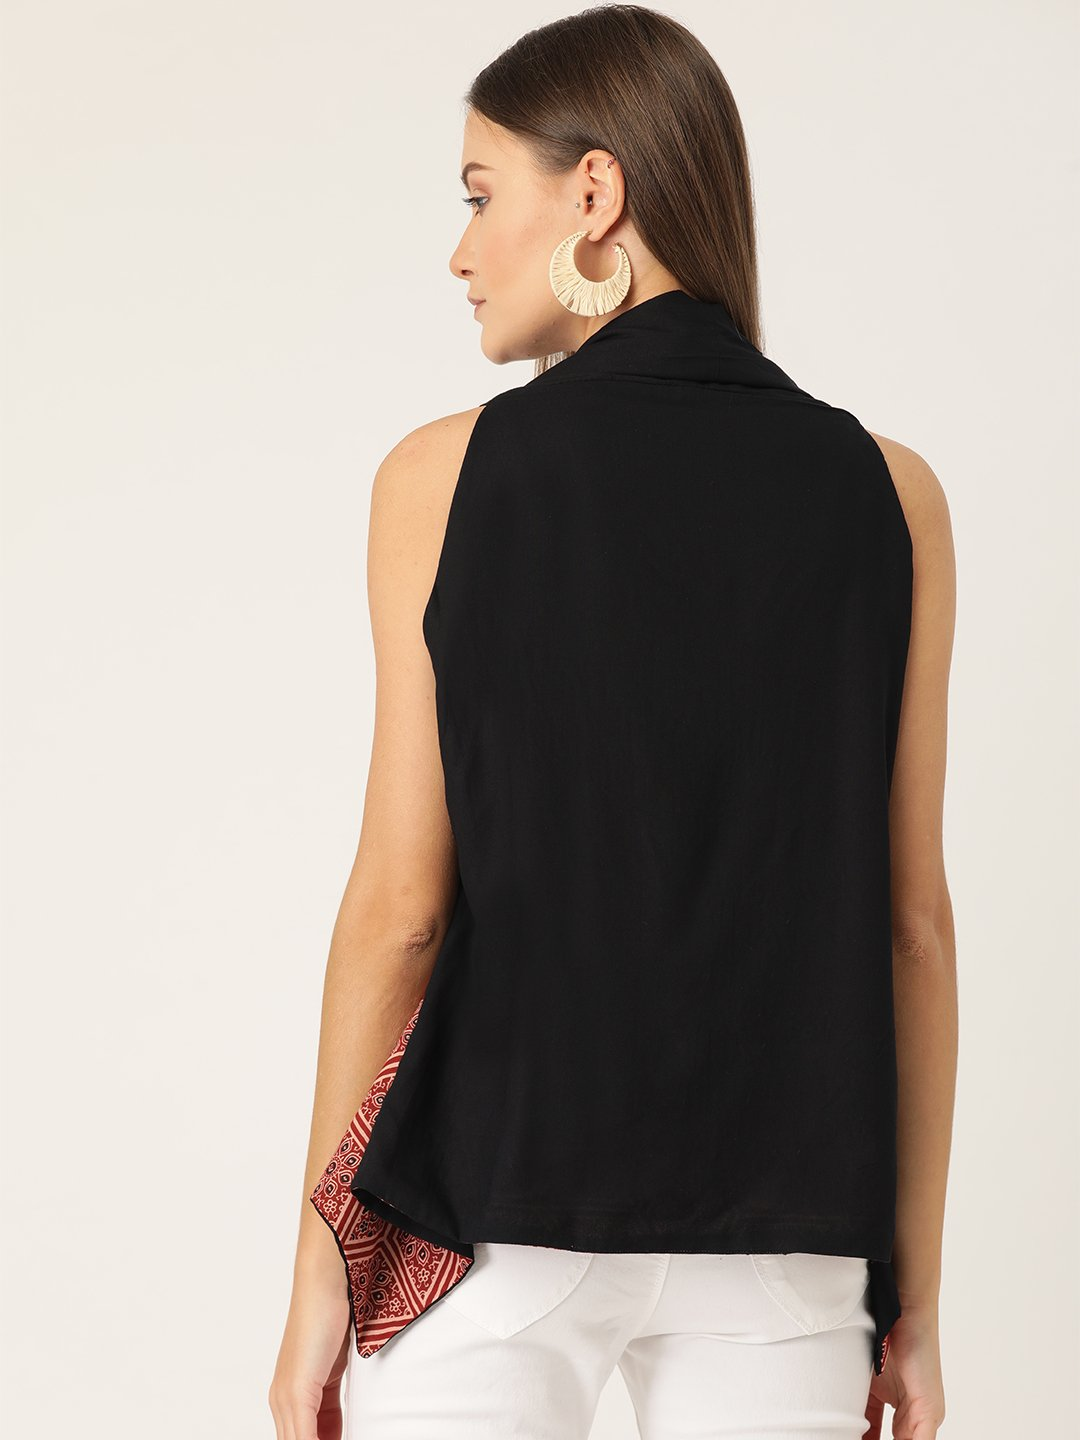 Reversible Shrug In Rust & Black Colour